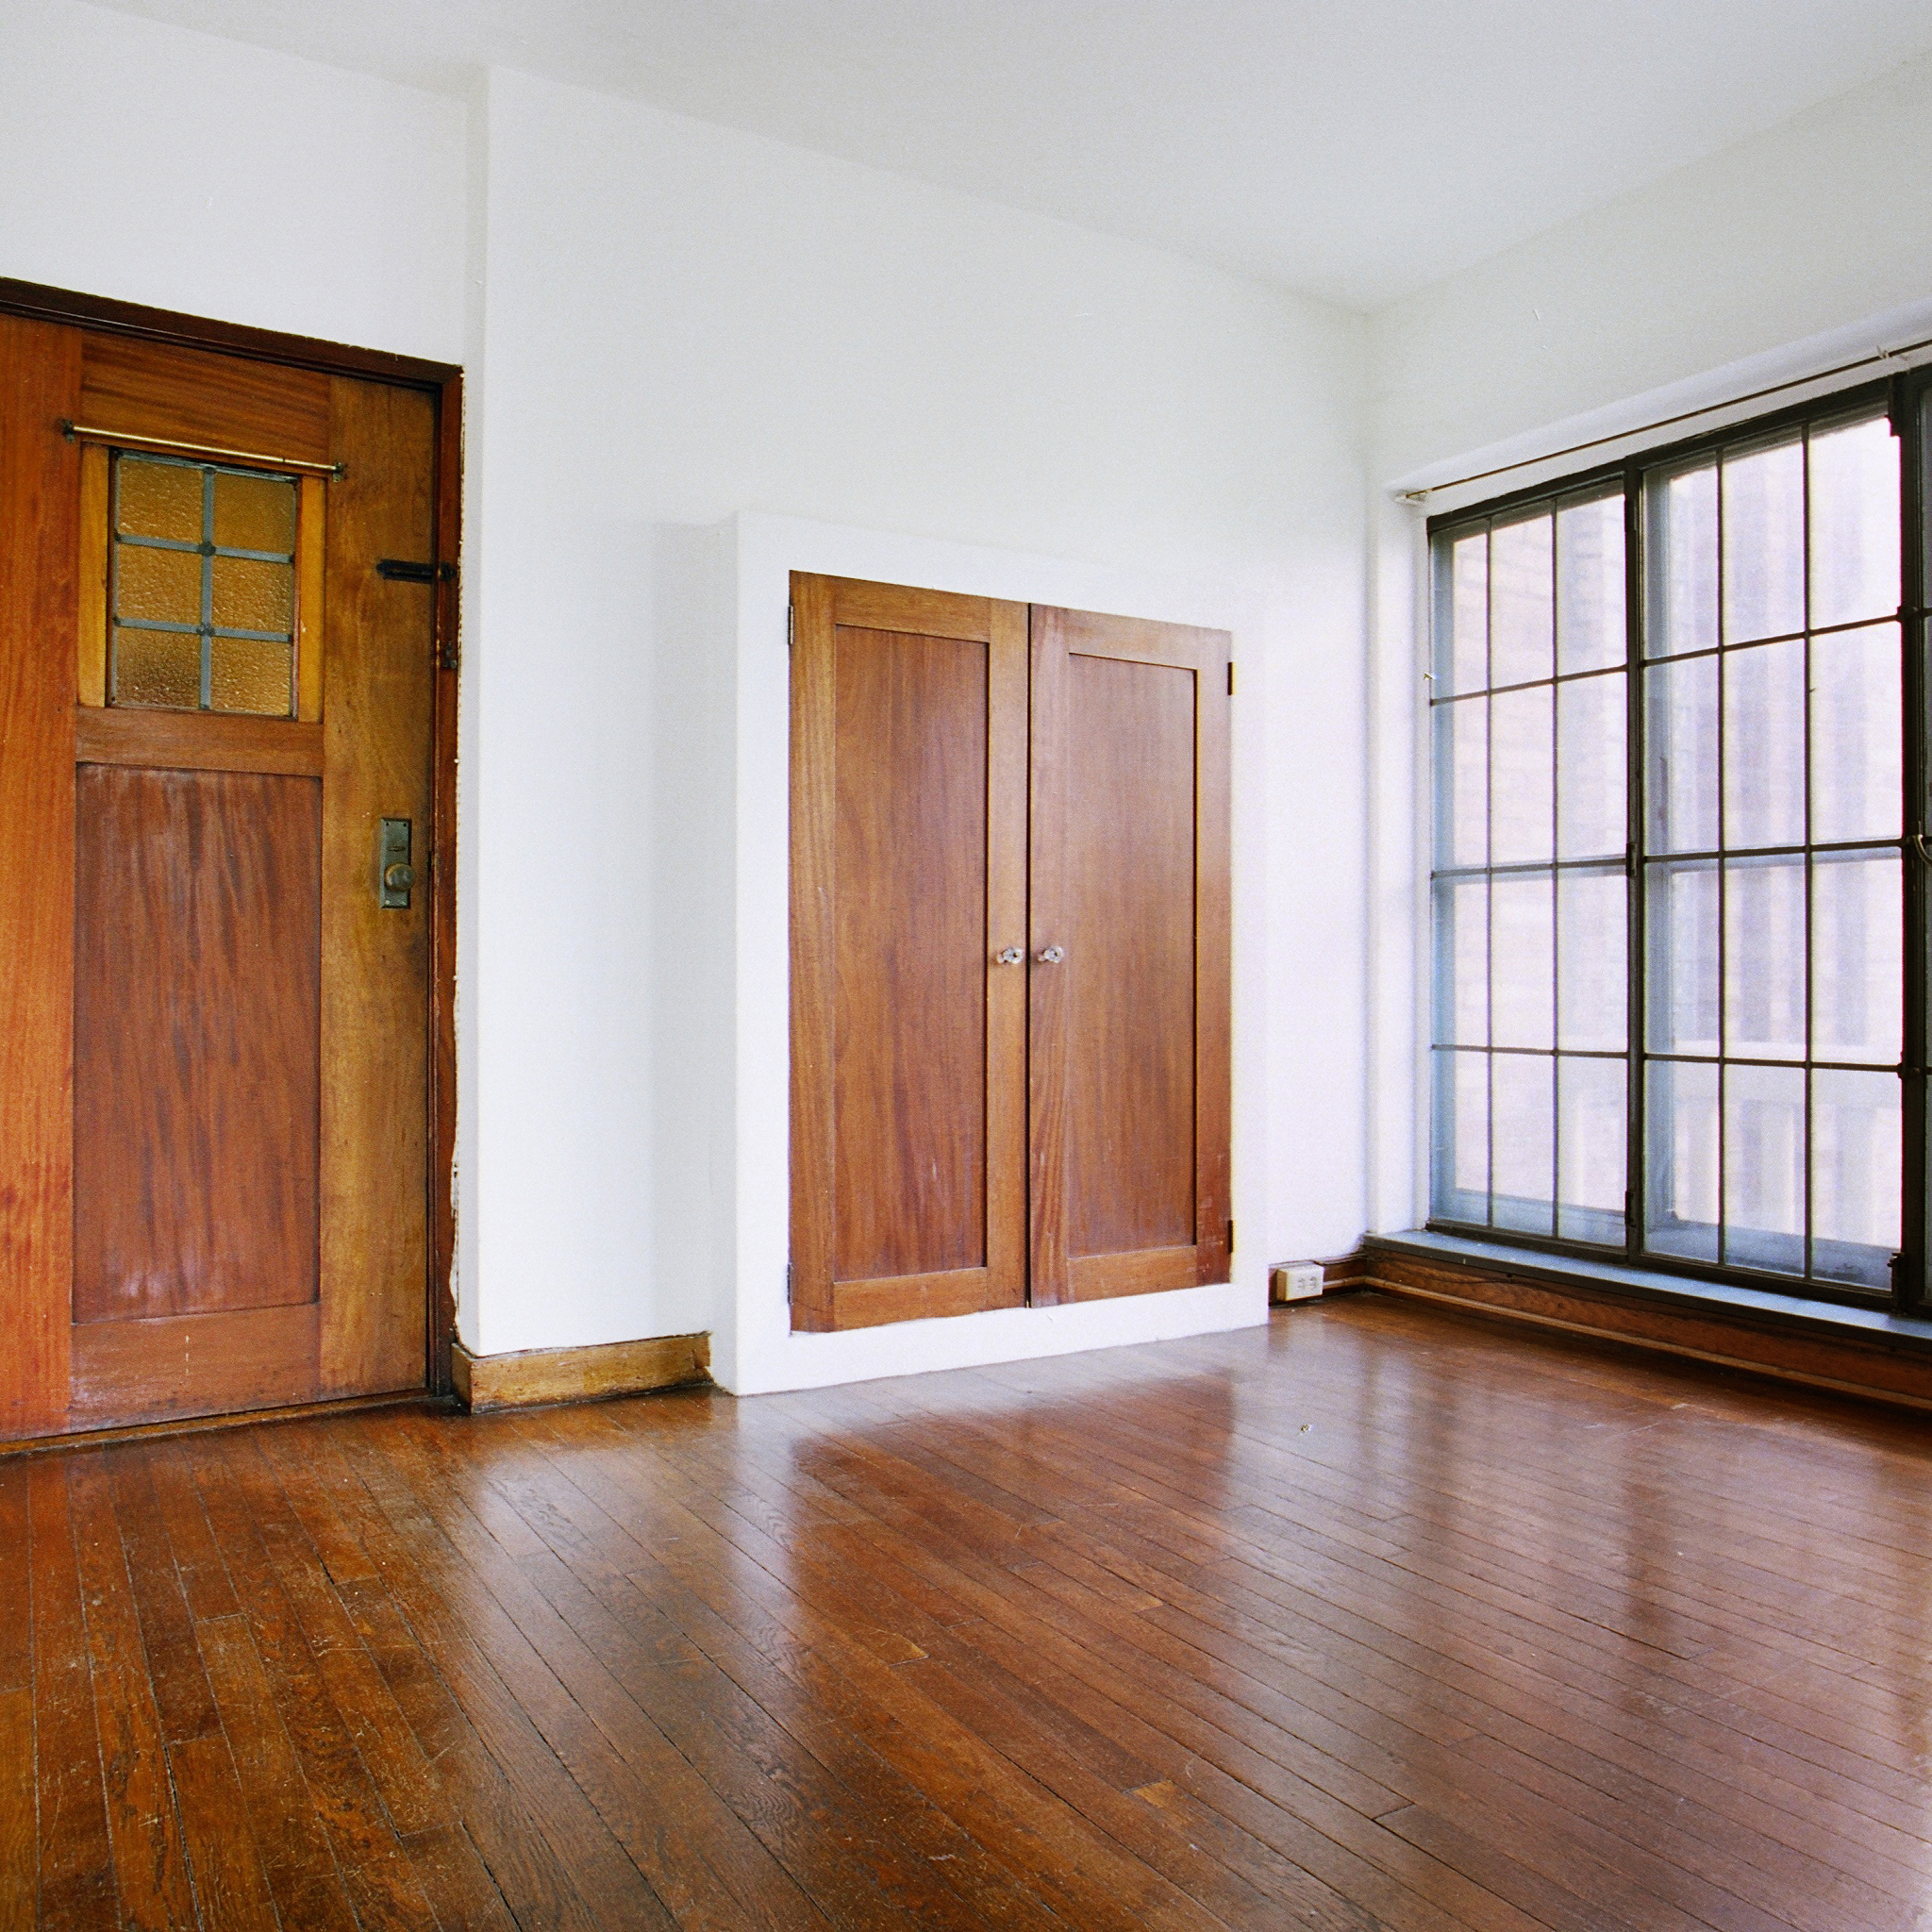 interior of 342 S. Highland Ave, Apt. 15A 4